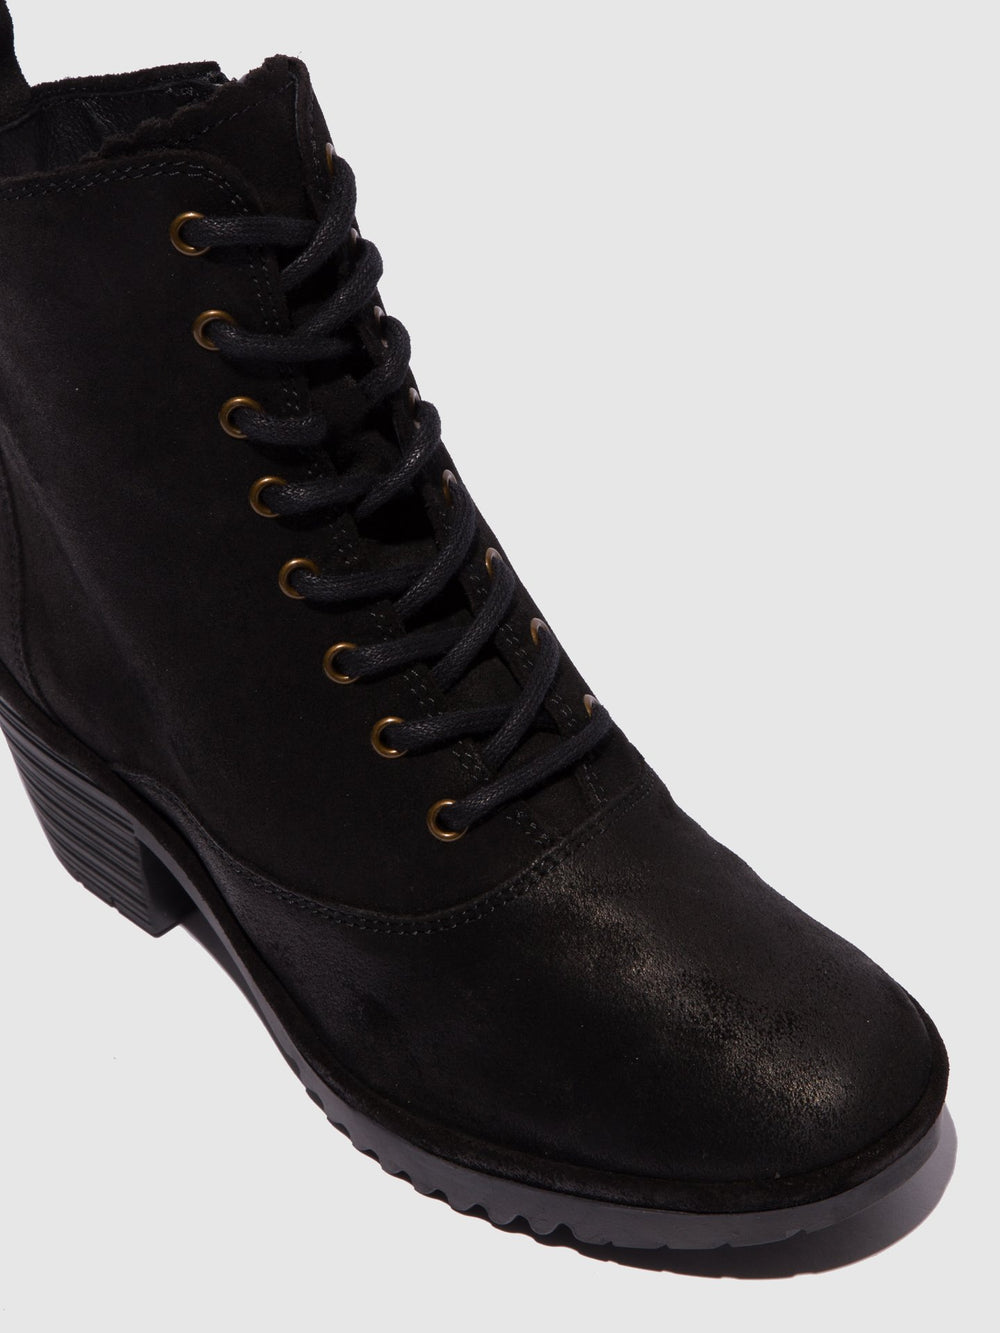 Lace-up Ankle Boots WUNE077FLY BLACK